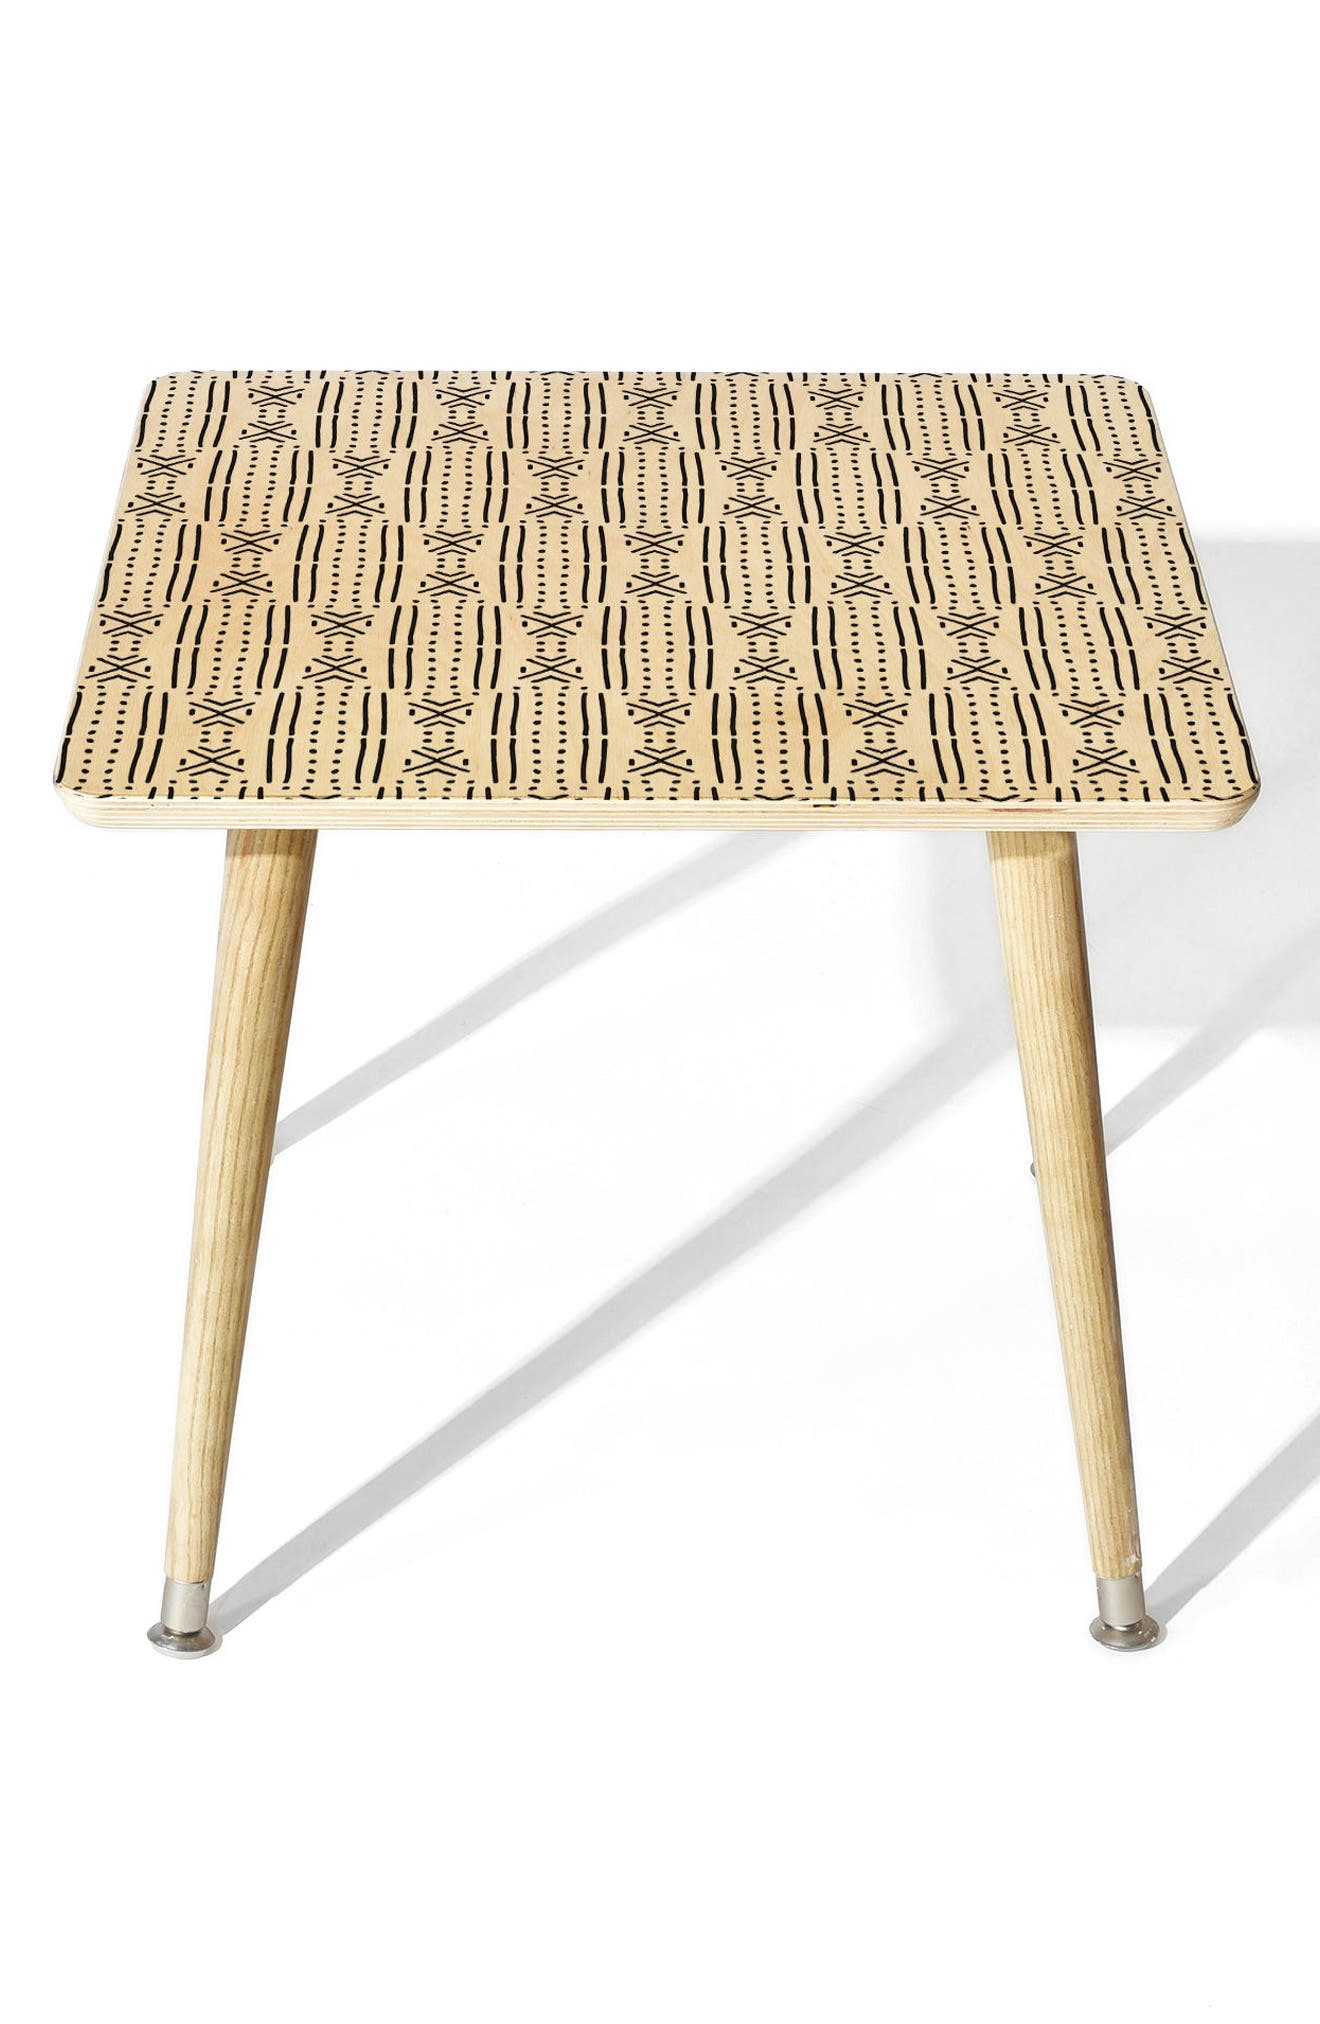 Mudcloth Side Table,                             Main thumbnail 1, color,                             100